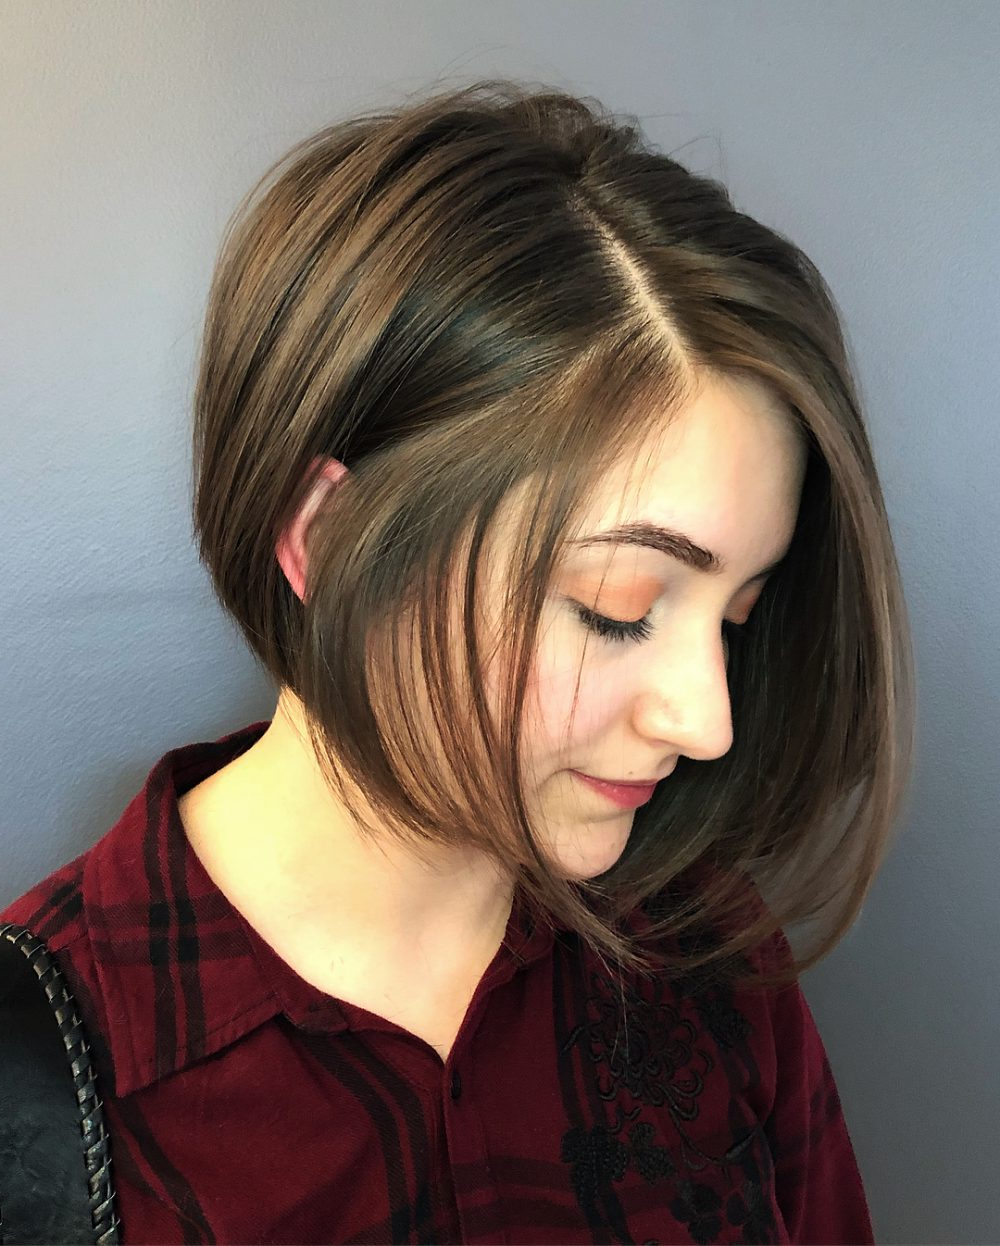 33 Flattering Short Hairstyles For Round Faces In 2018 Inside Short Hairstyles For Women With Round Faces (View 4 of 25)